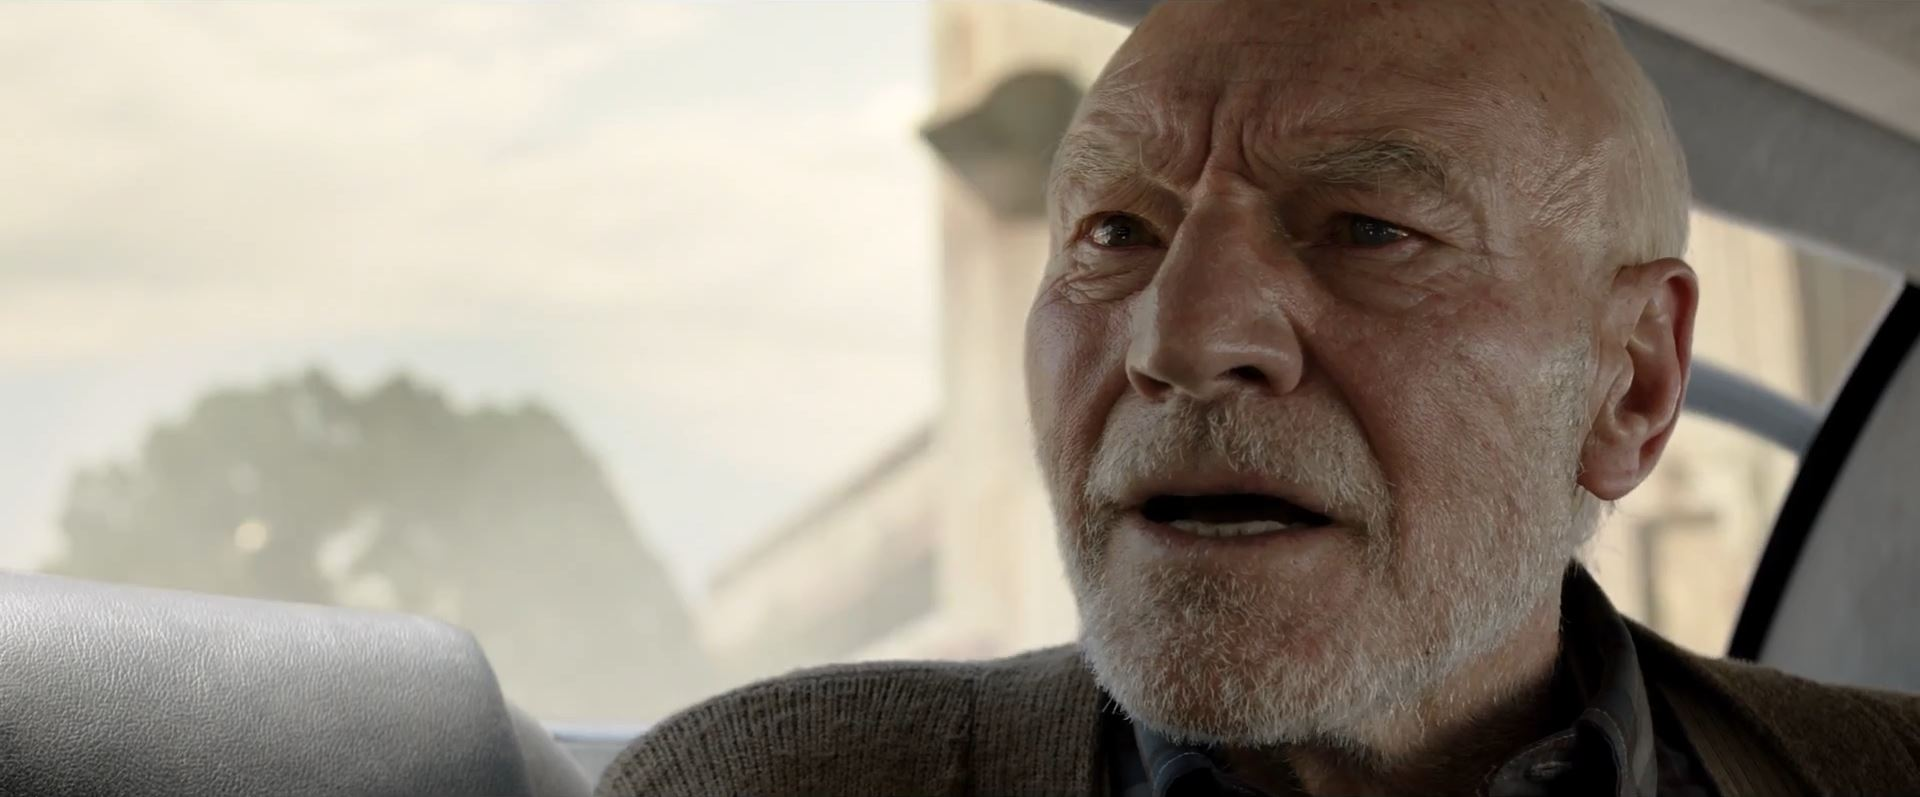 Patrick Stewart as Professor X in Logan - Super Bowl Trailers